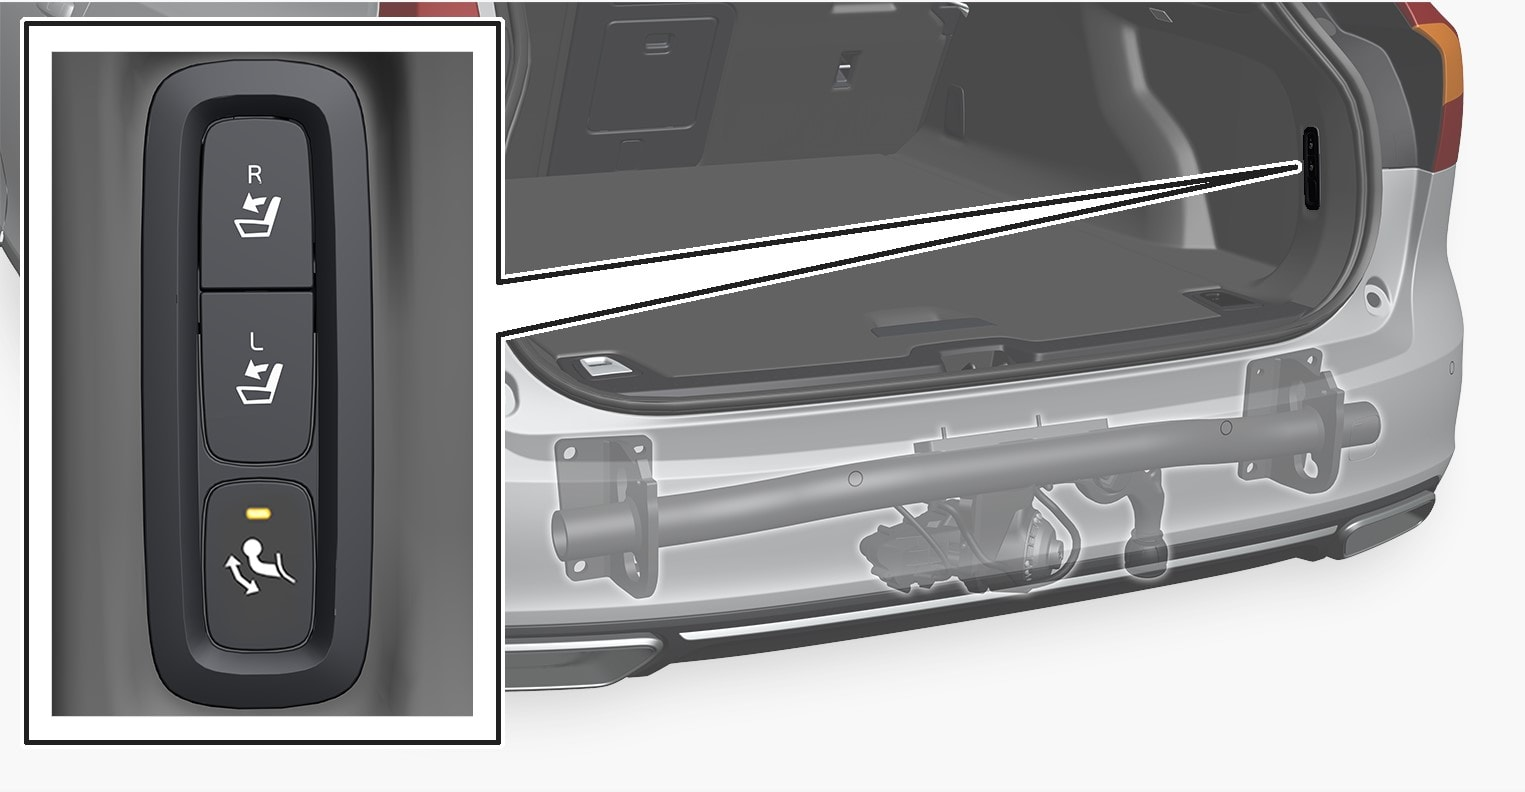 P5-1617-V90-Swivable towbar and switch foldout step1